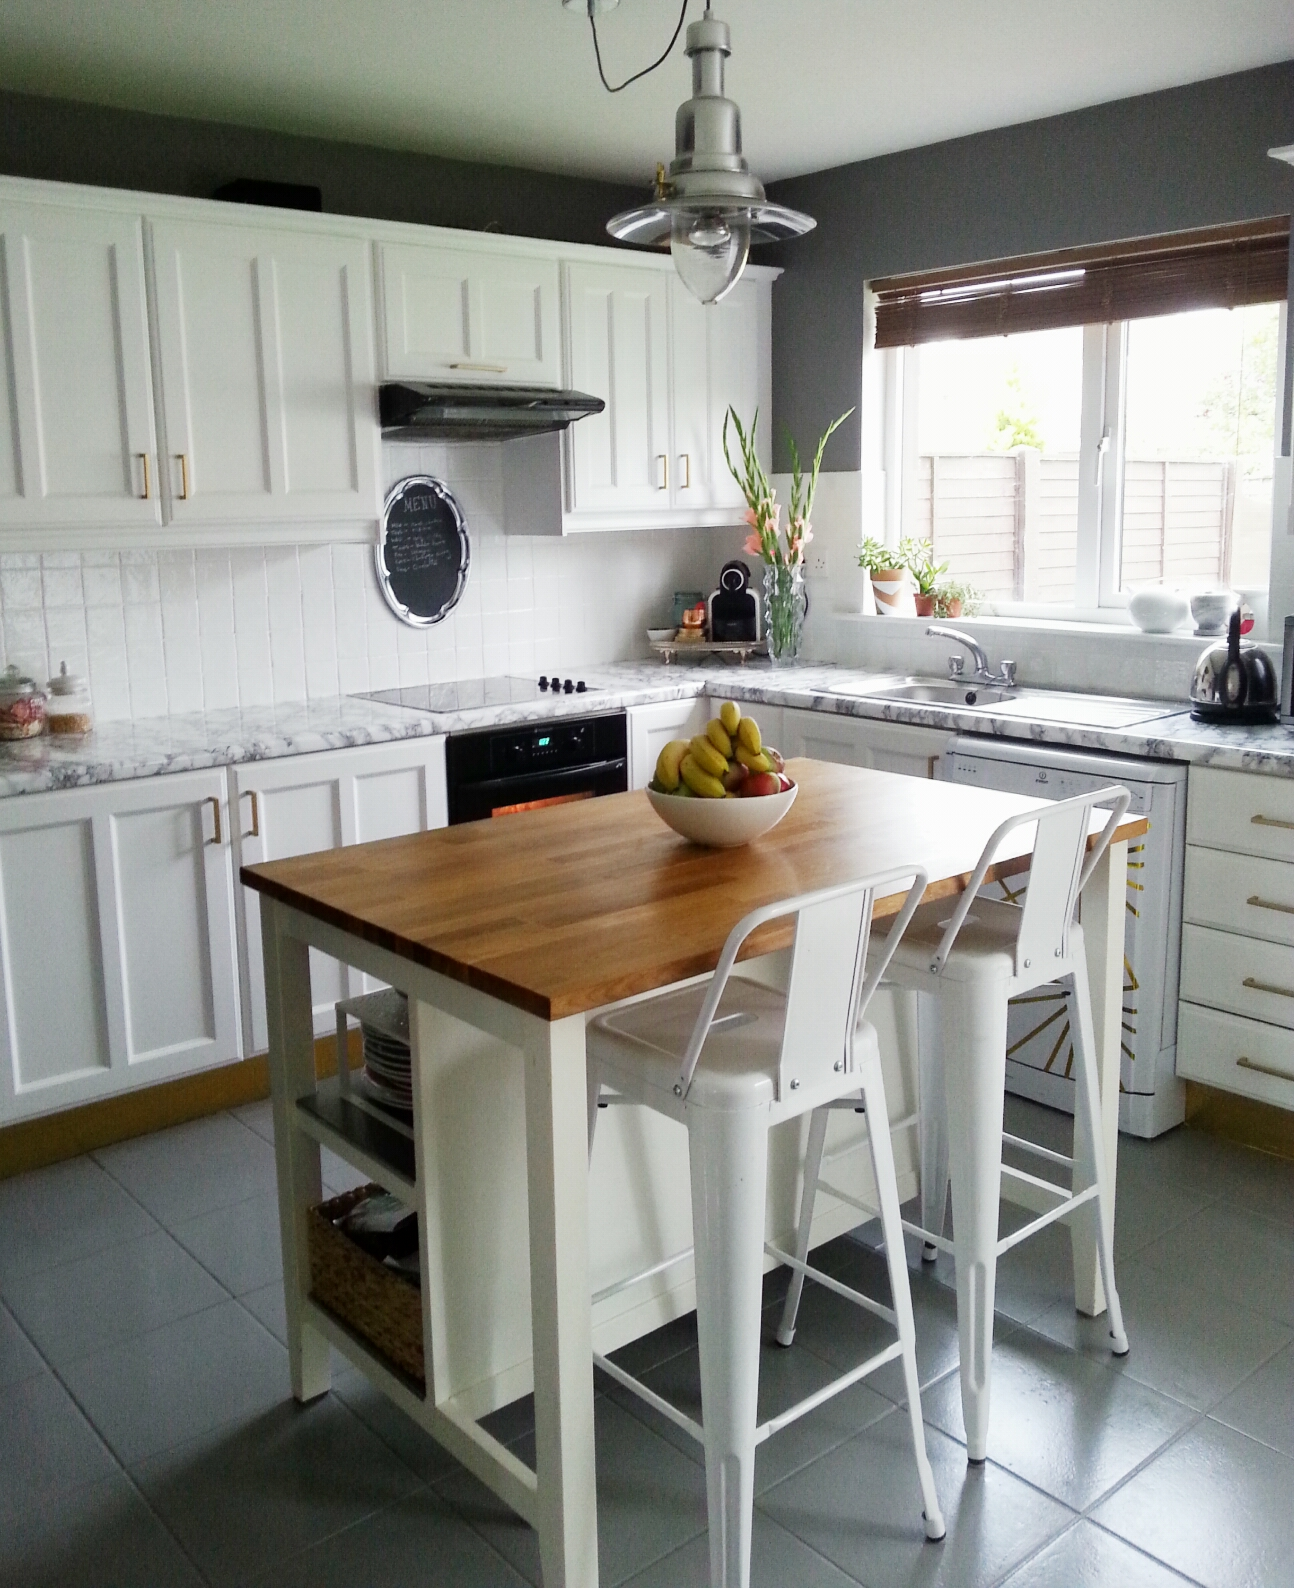 200 One Week Full Kitchen Makeover Make Do And Diy